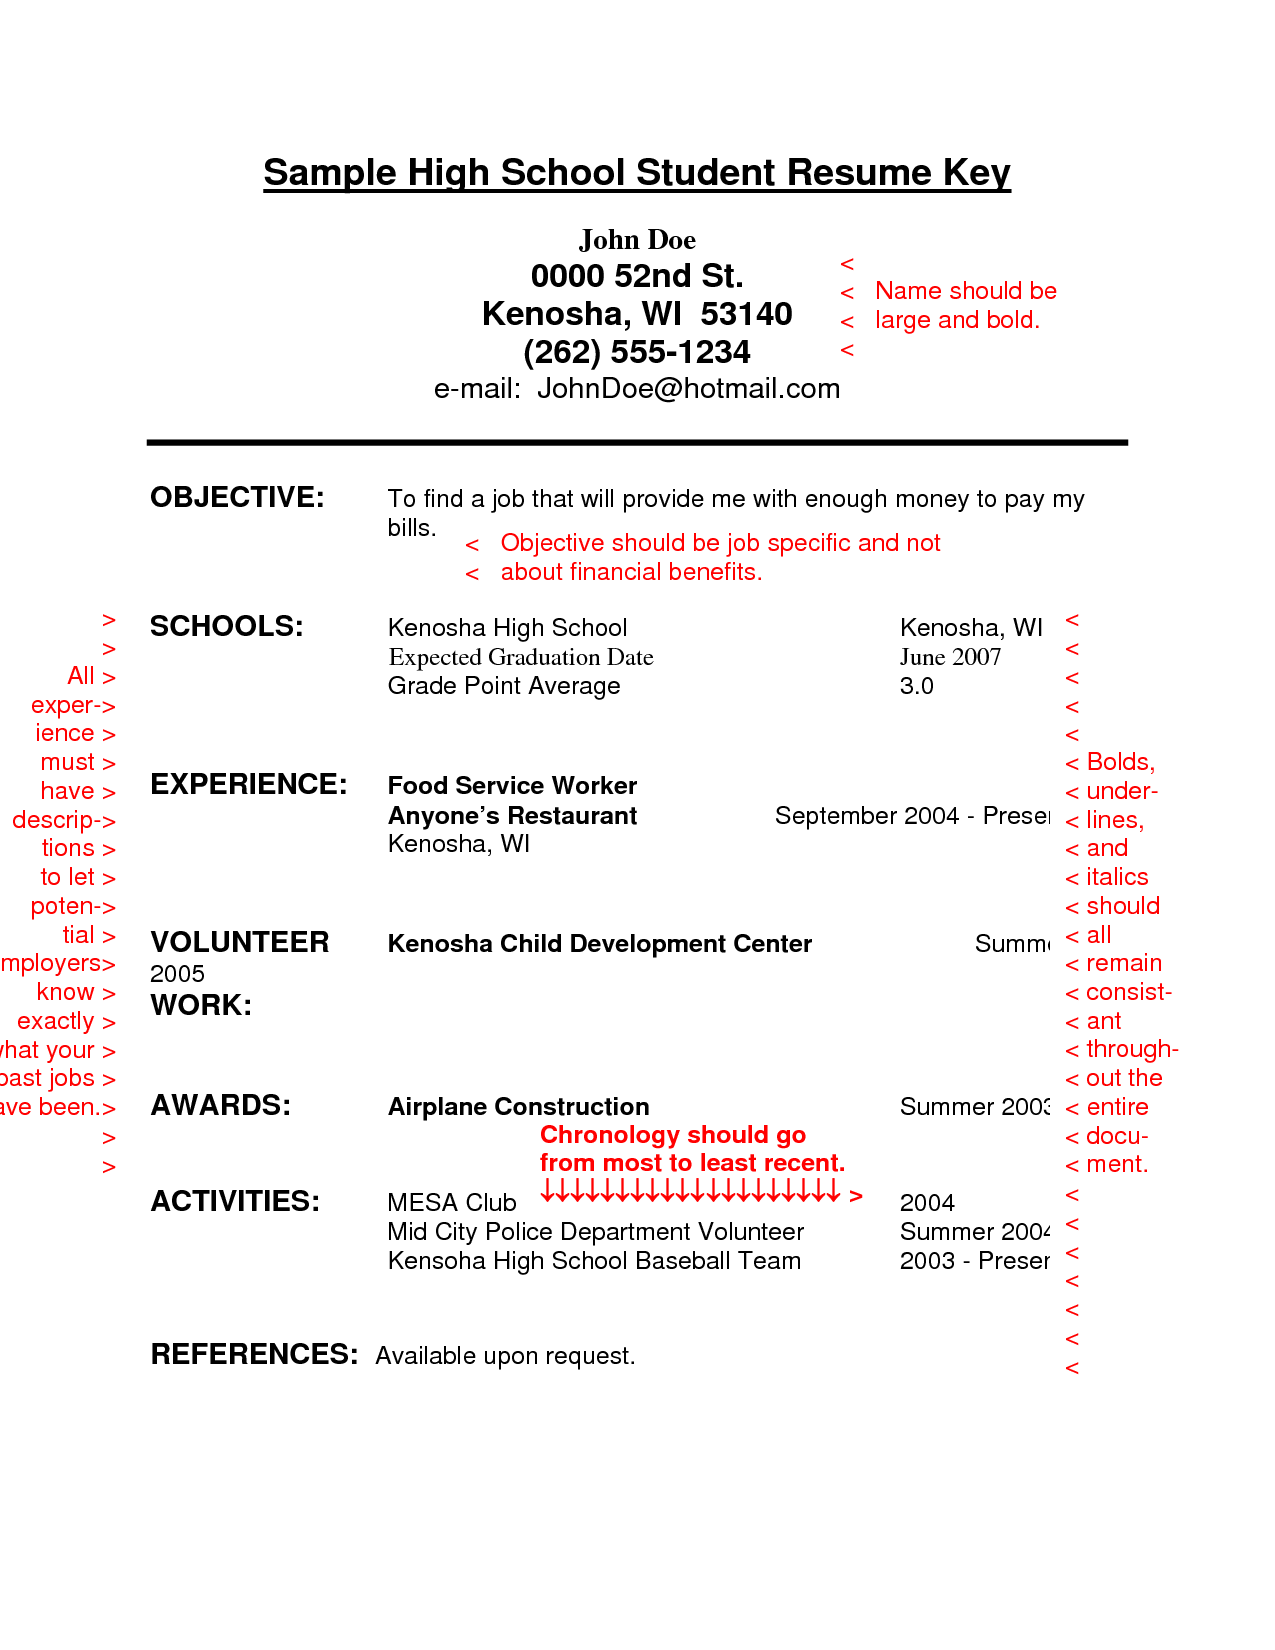 resume examples for high school students examples resume resumeexamples school students